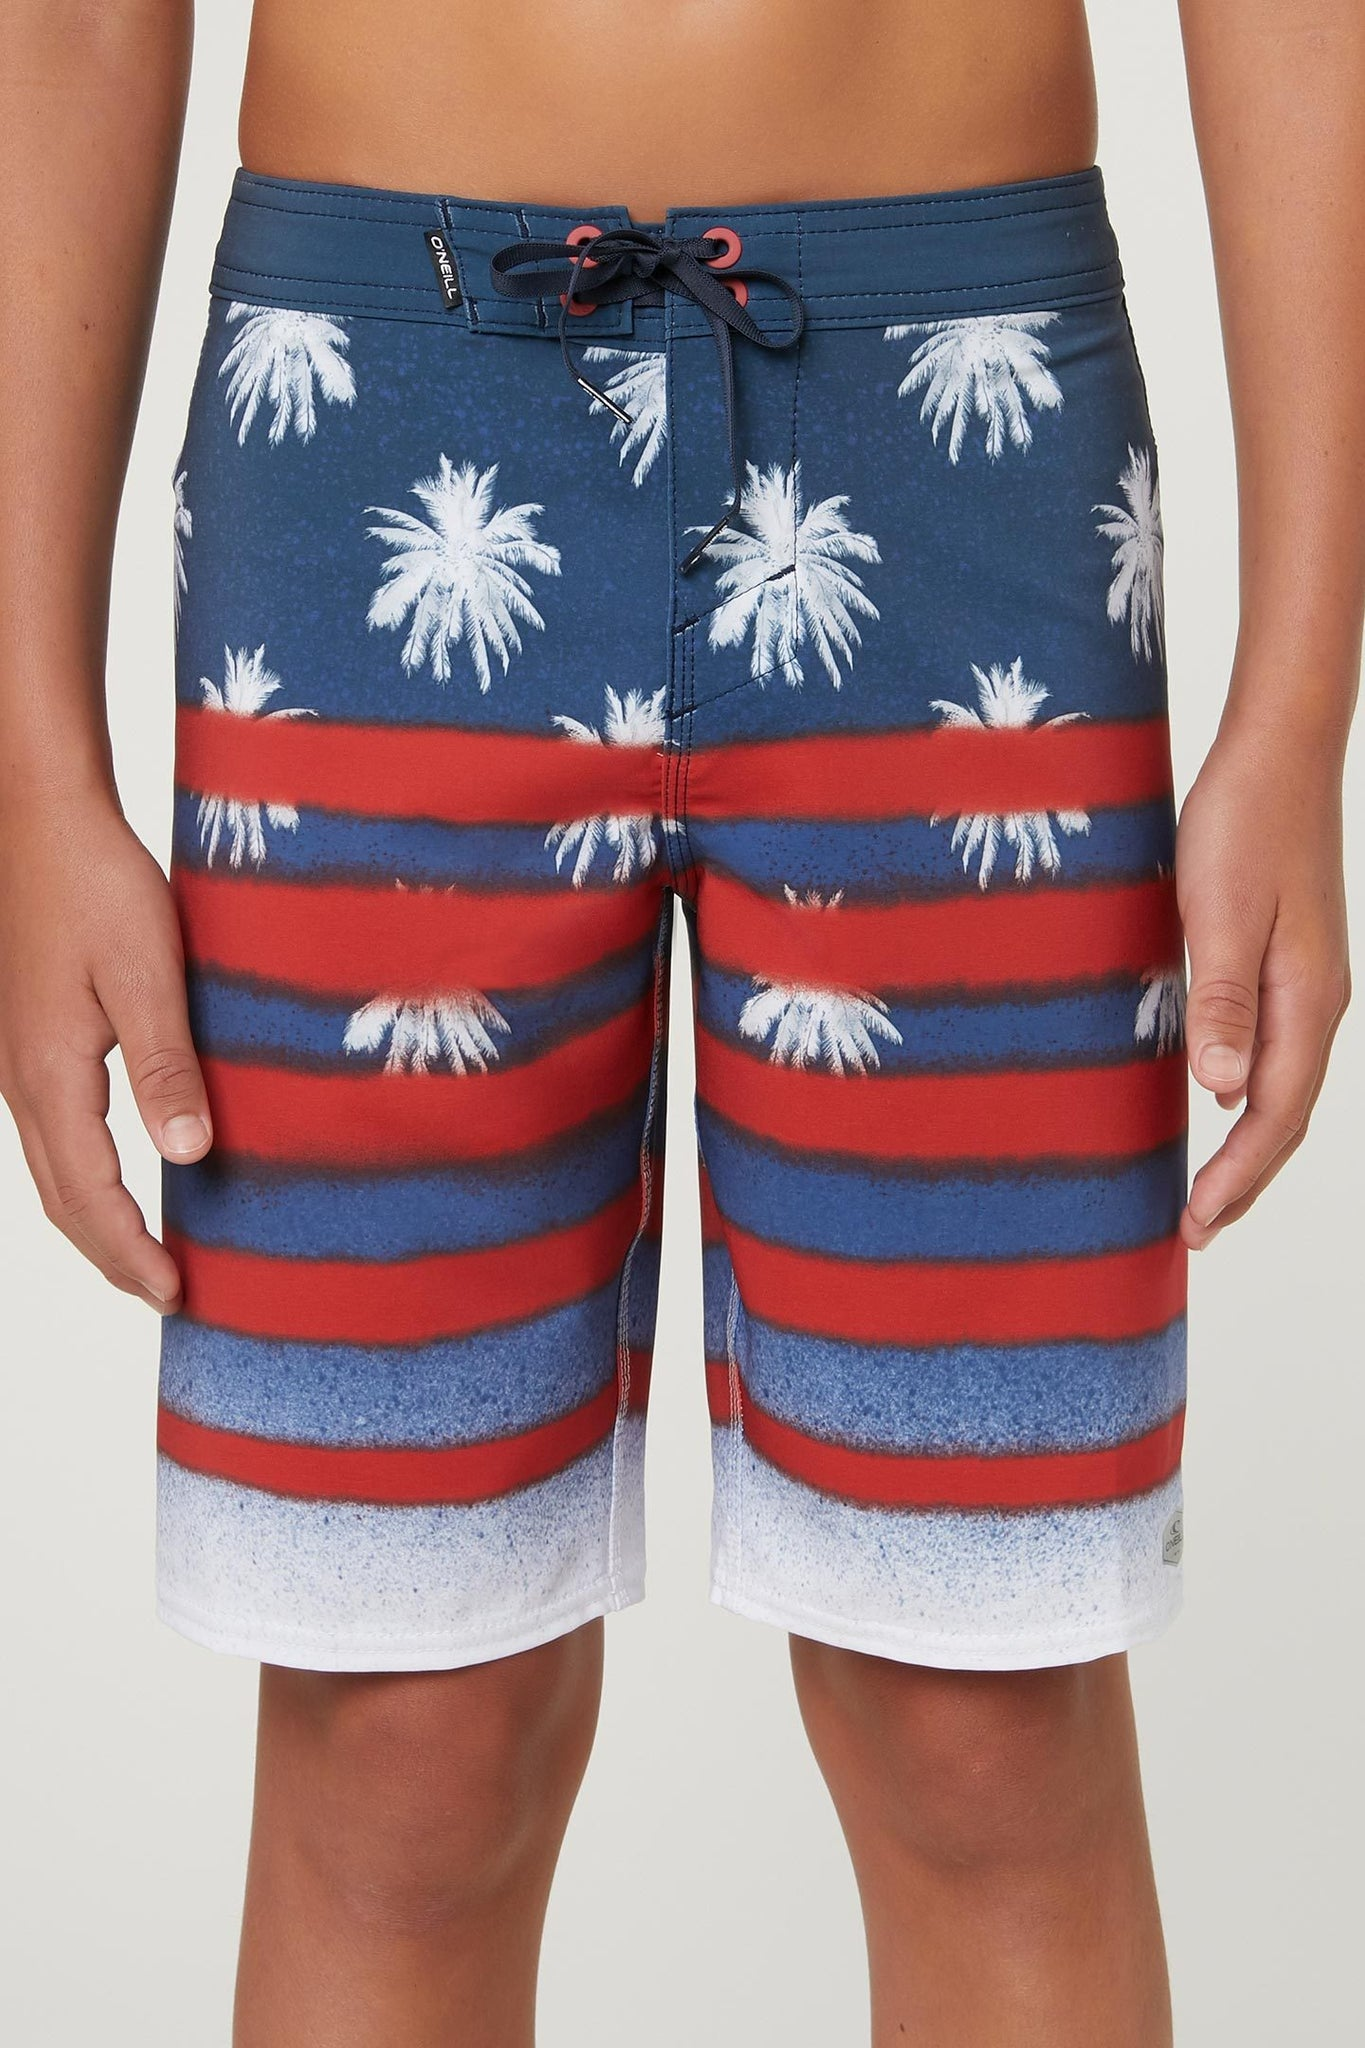 Little Boys Hyperfreak Sarfin Usa Boardshorts - Red White Blue | O'Neill